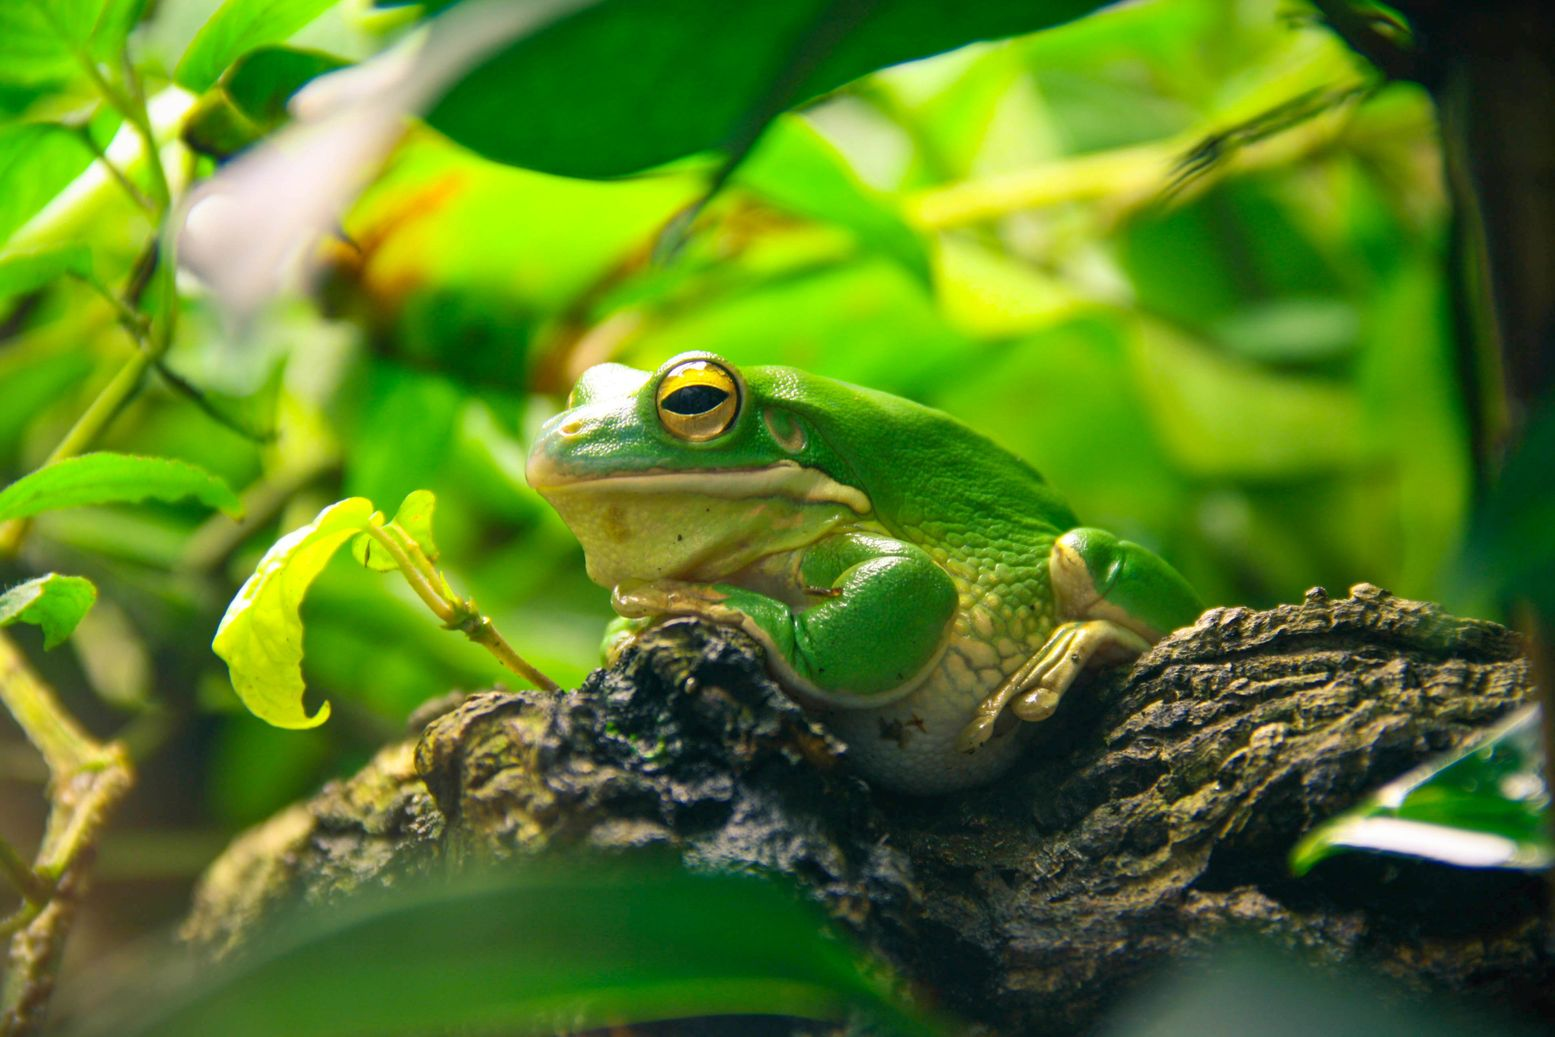 Green frog perched on a truck surrounded by leaves and vegetation